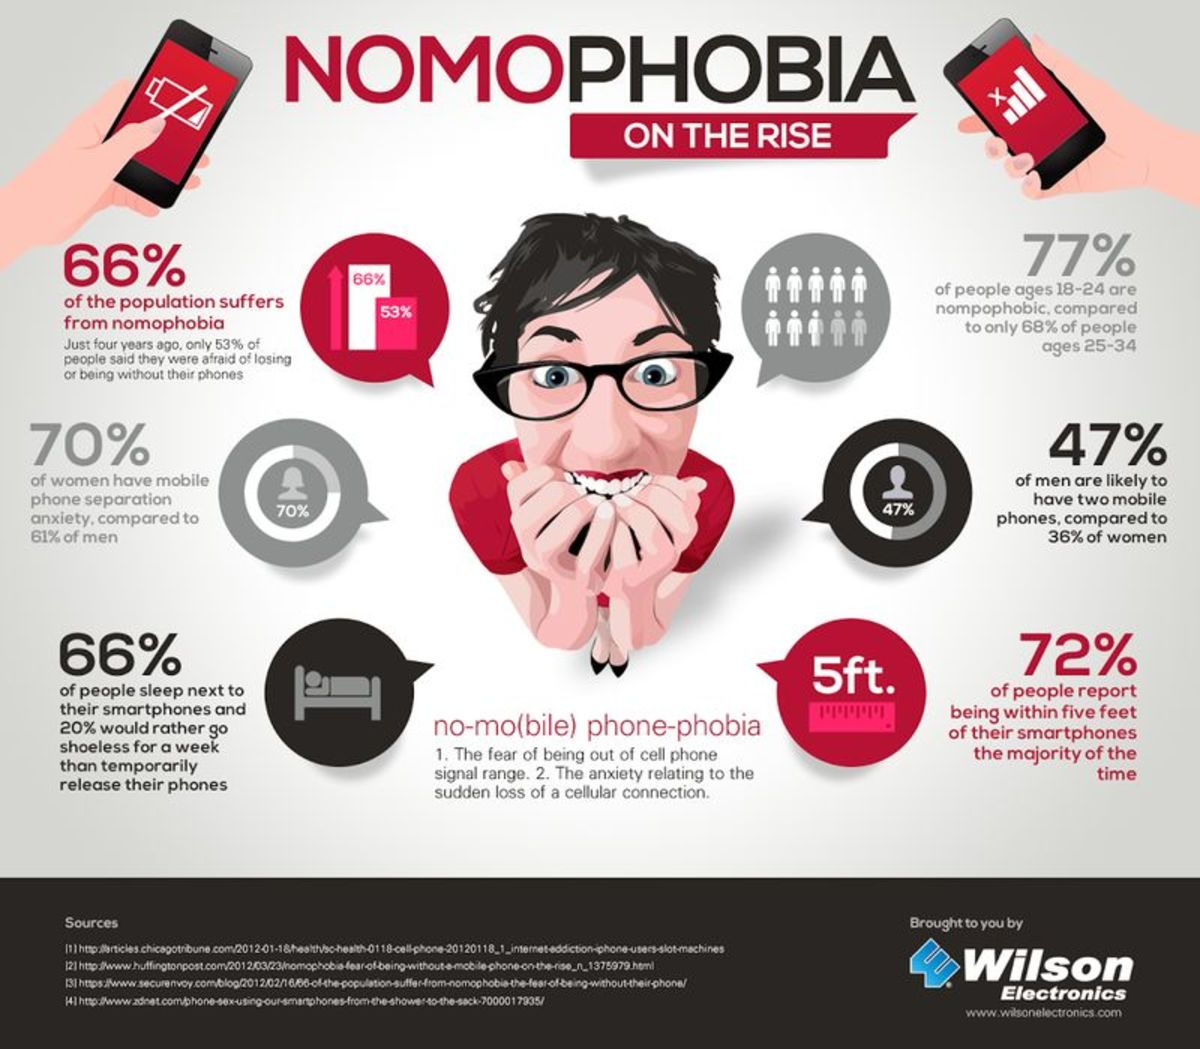 Stem the Rise of Nomophobia